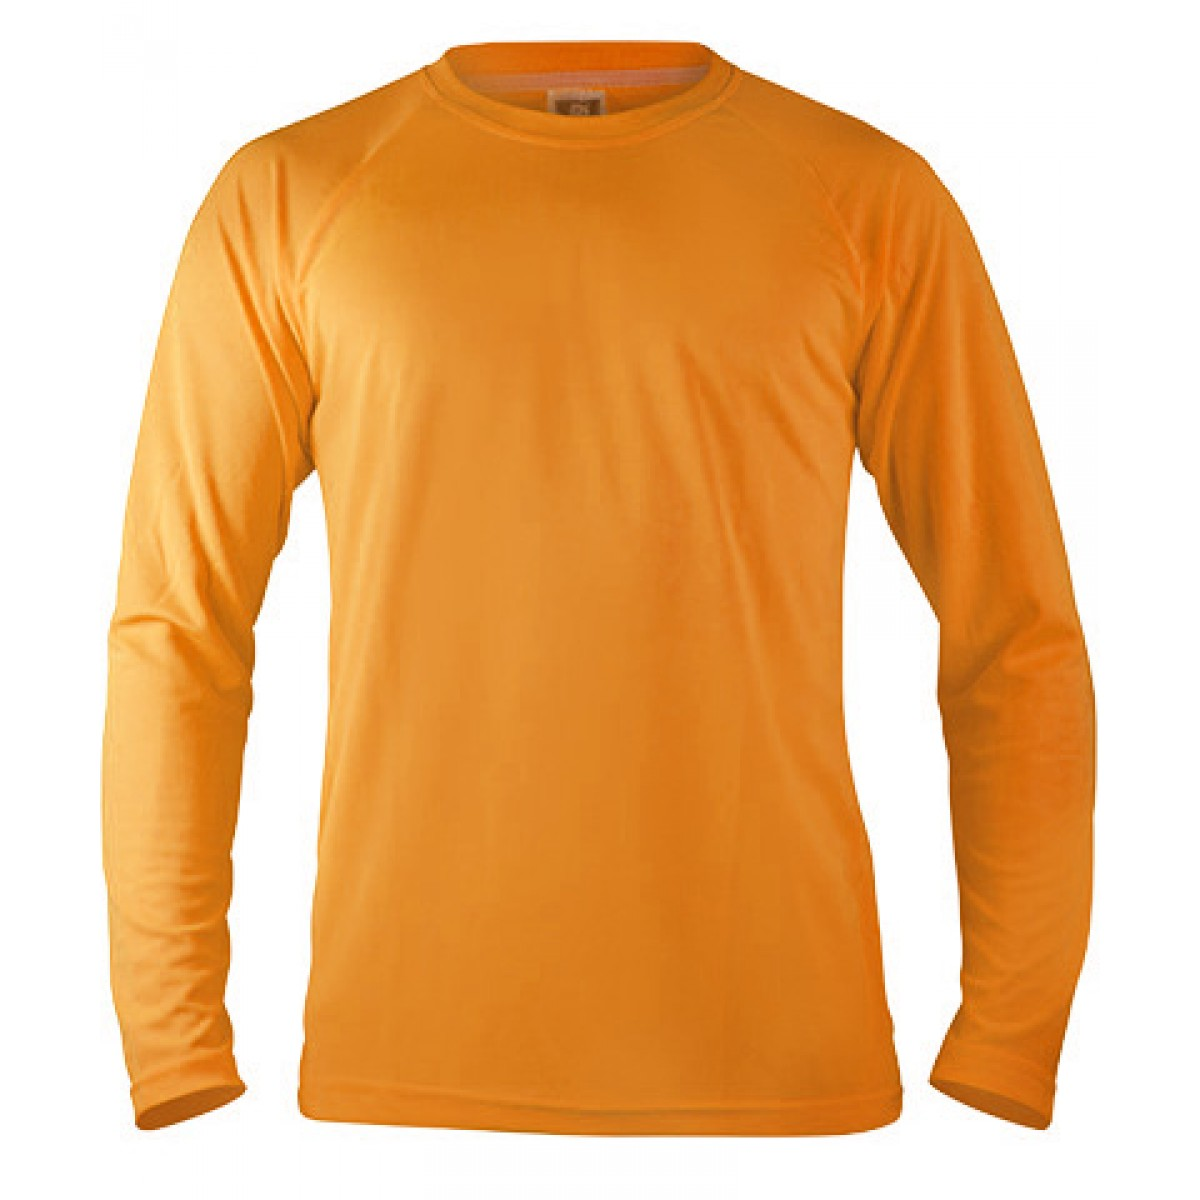 Long Sleeve Mesh Performance T-shirt-Neon Orange -YM